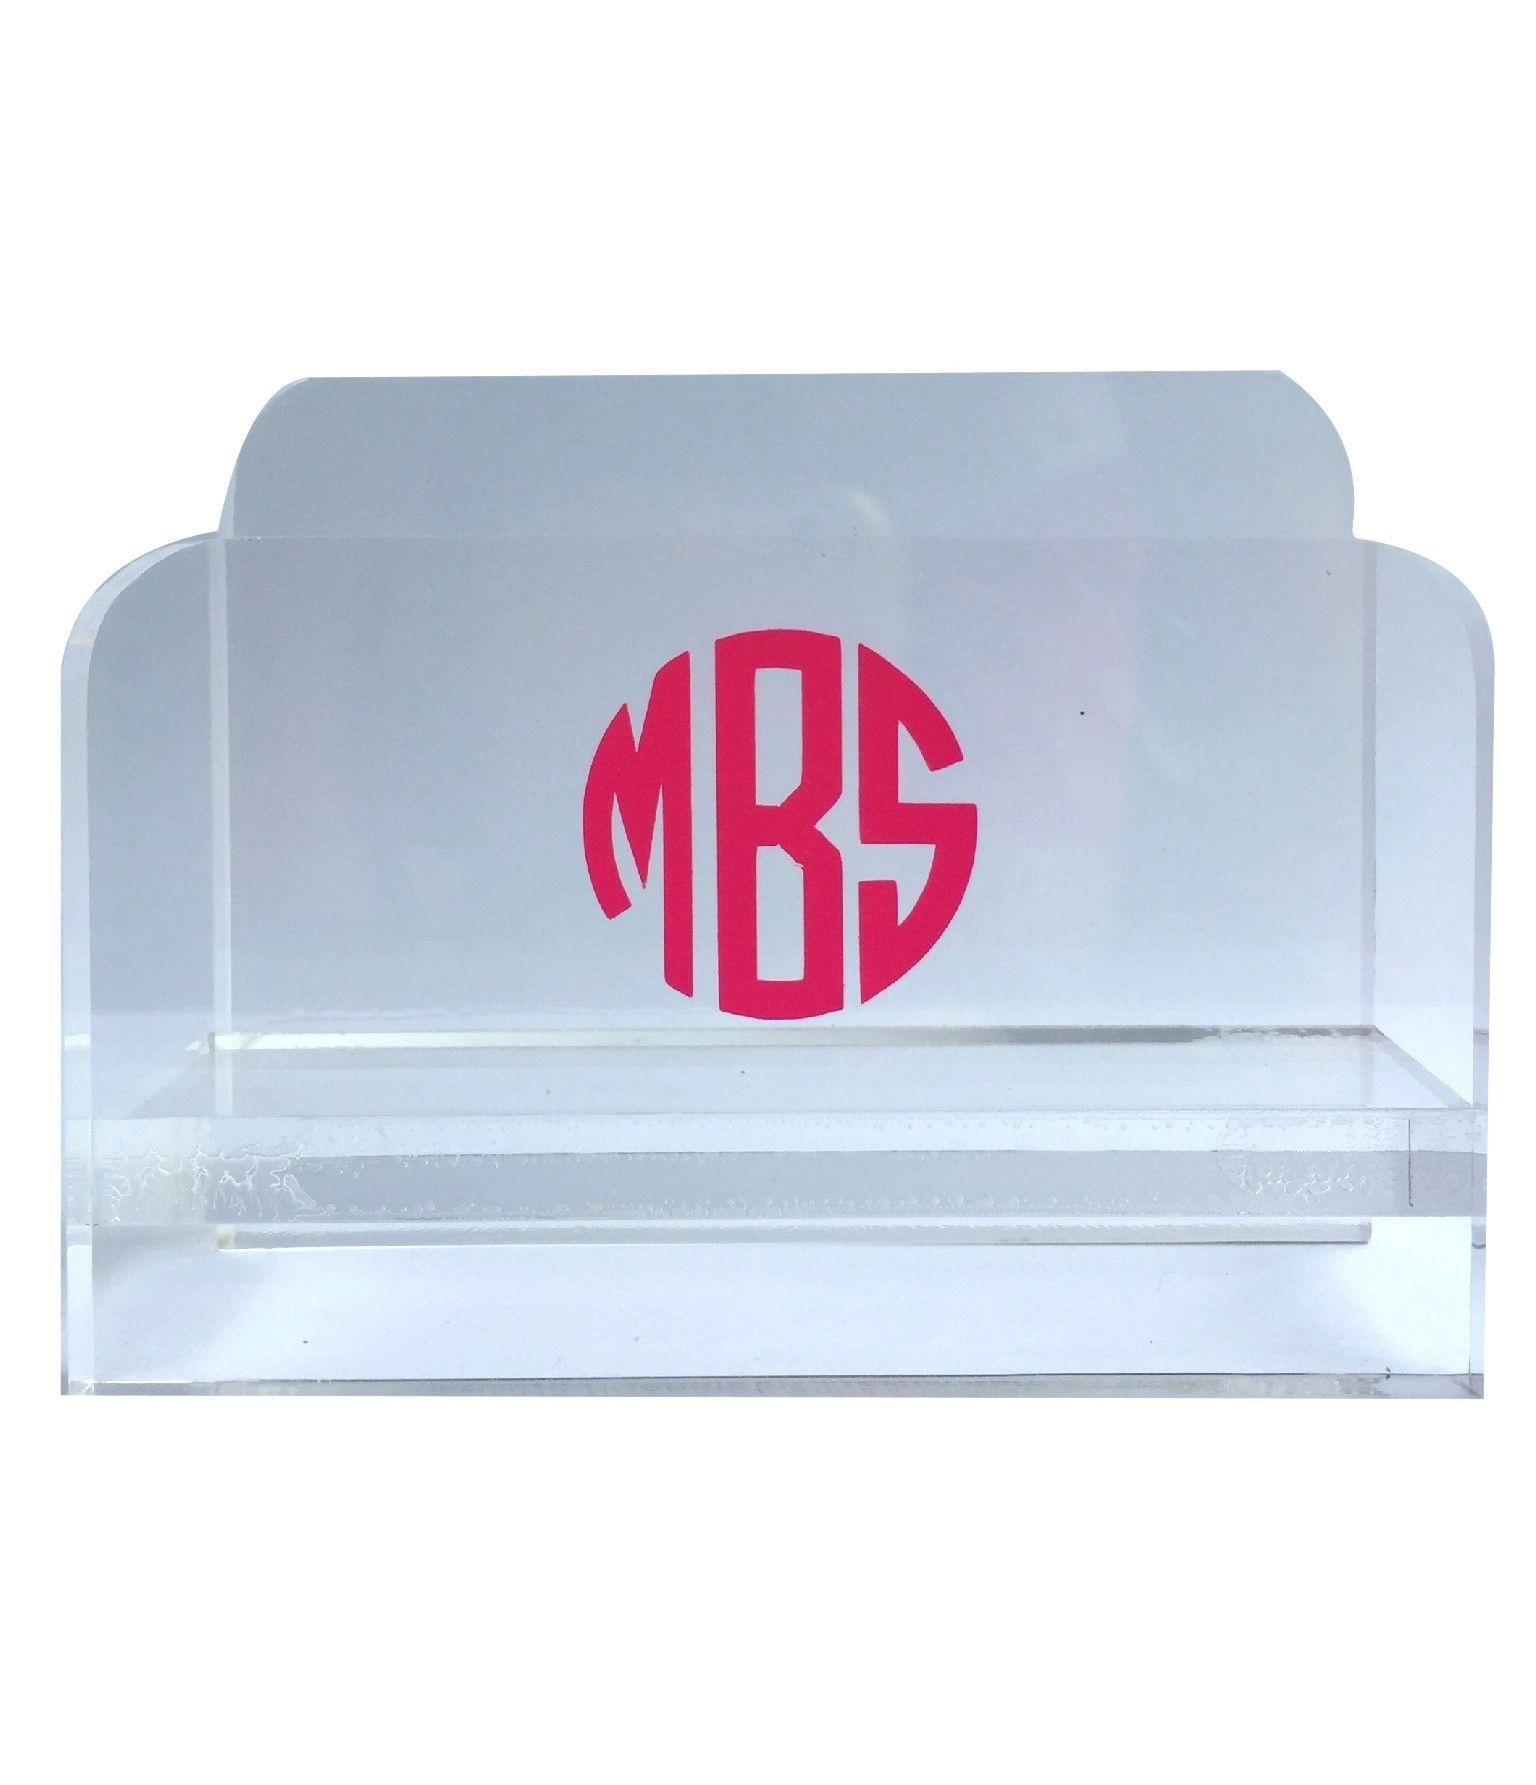 Acrylic Business Card Holder | Business card holders, Business cards ...